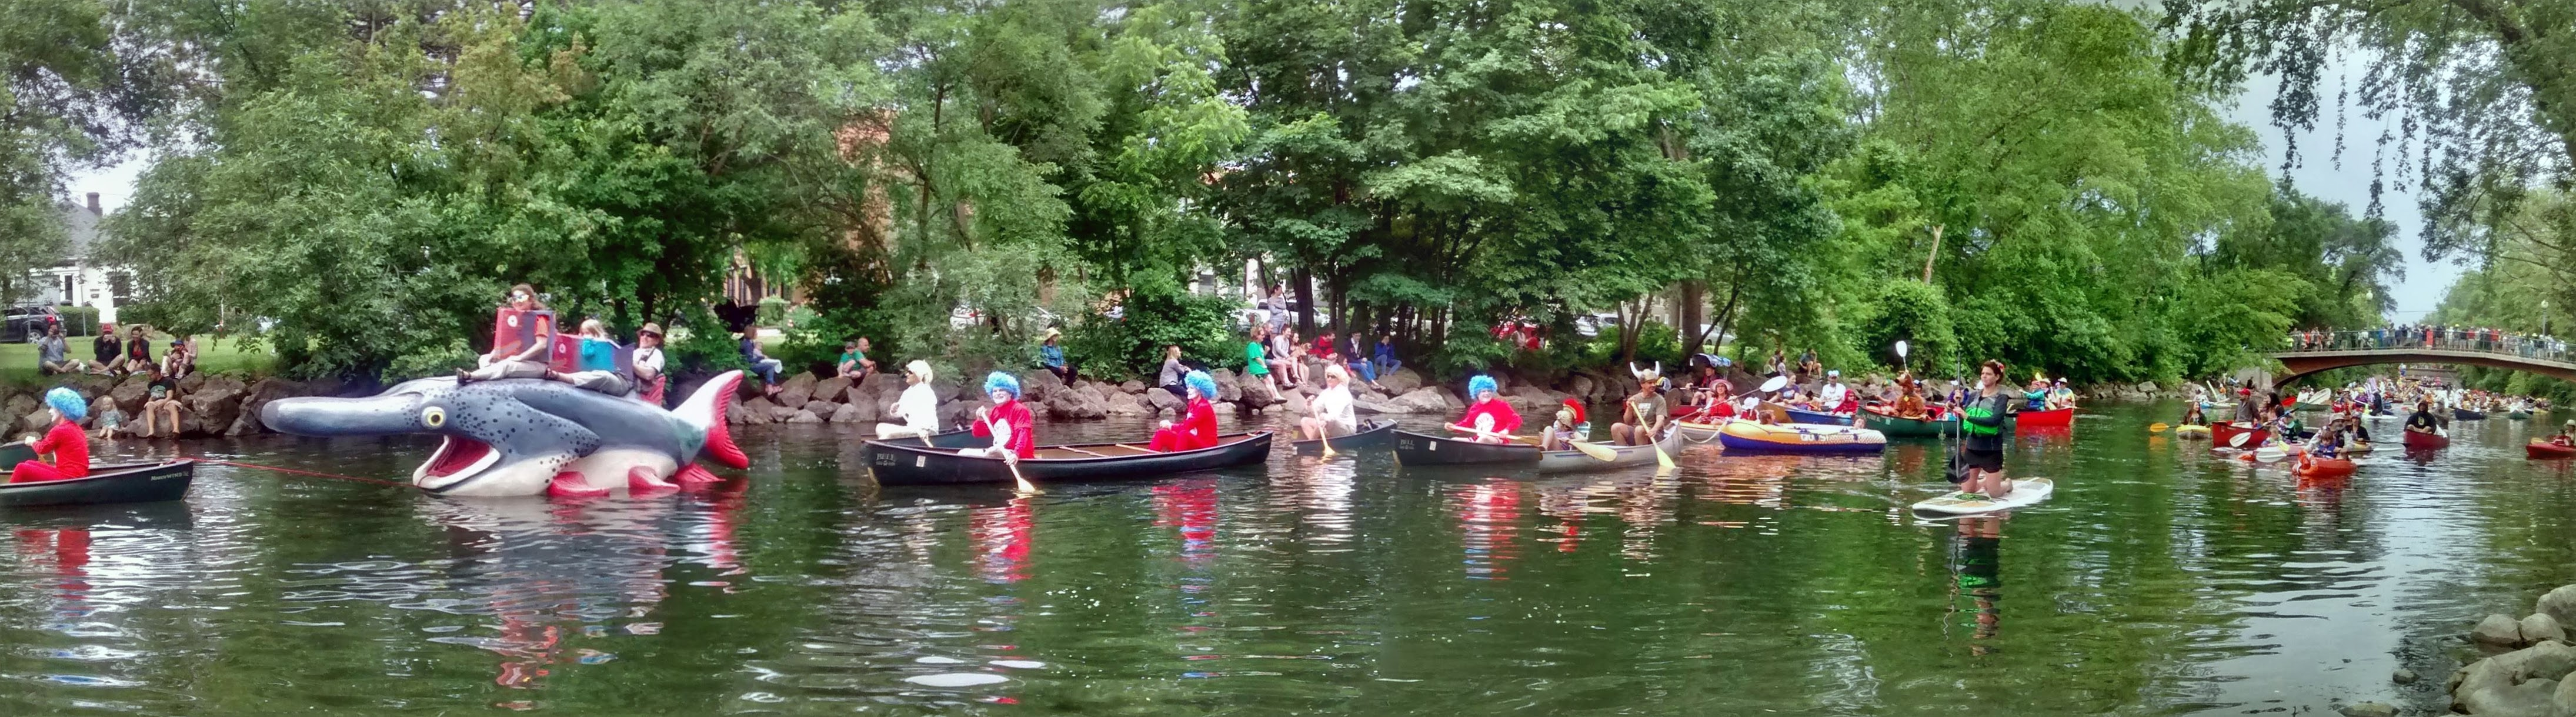 The Fool's Flotilla in Madison. Madison, you're a goofy city, and I love it.